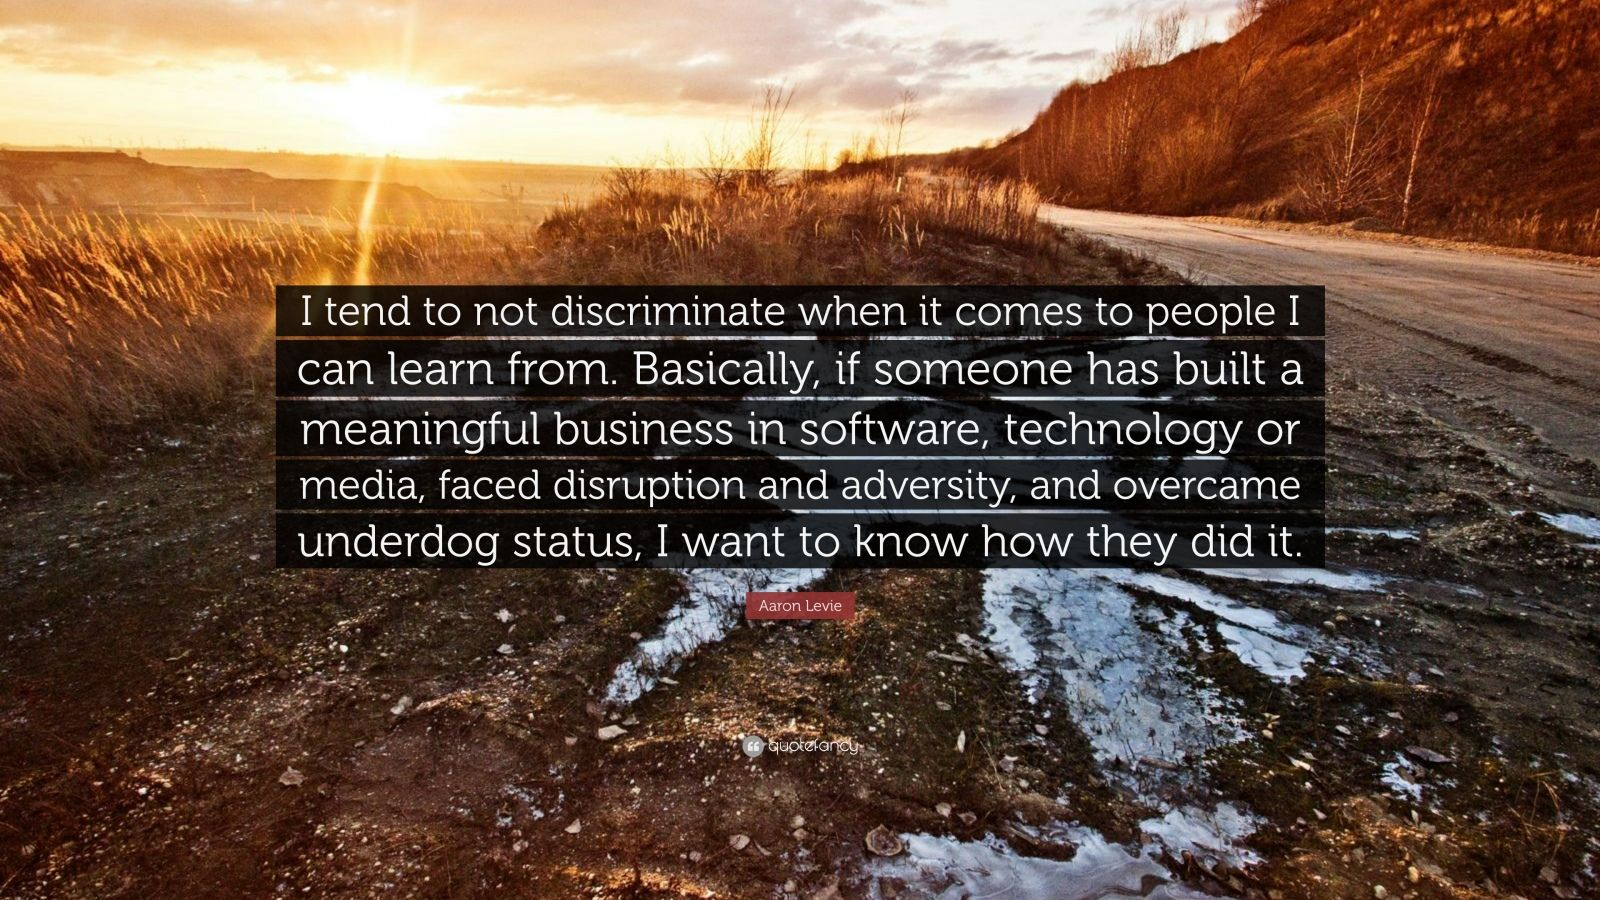 """Aaron Levie Quote: """"I tend to not discriminate when it comes to people I can learn from. Basically, if someone has built a meaningful business in software, technology or media, faced disruption and adversity, and overcame underdog status, I want to know how they did it."""""""